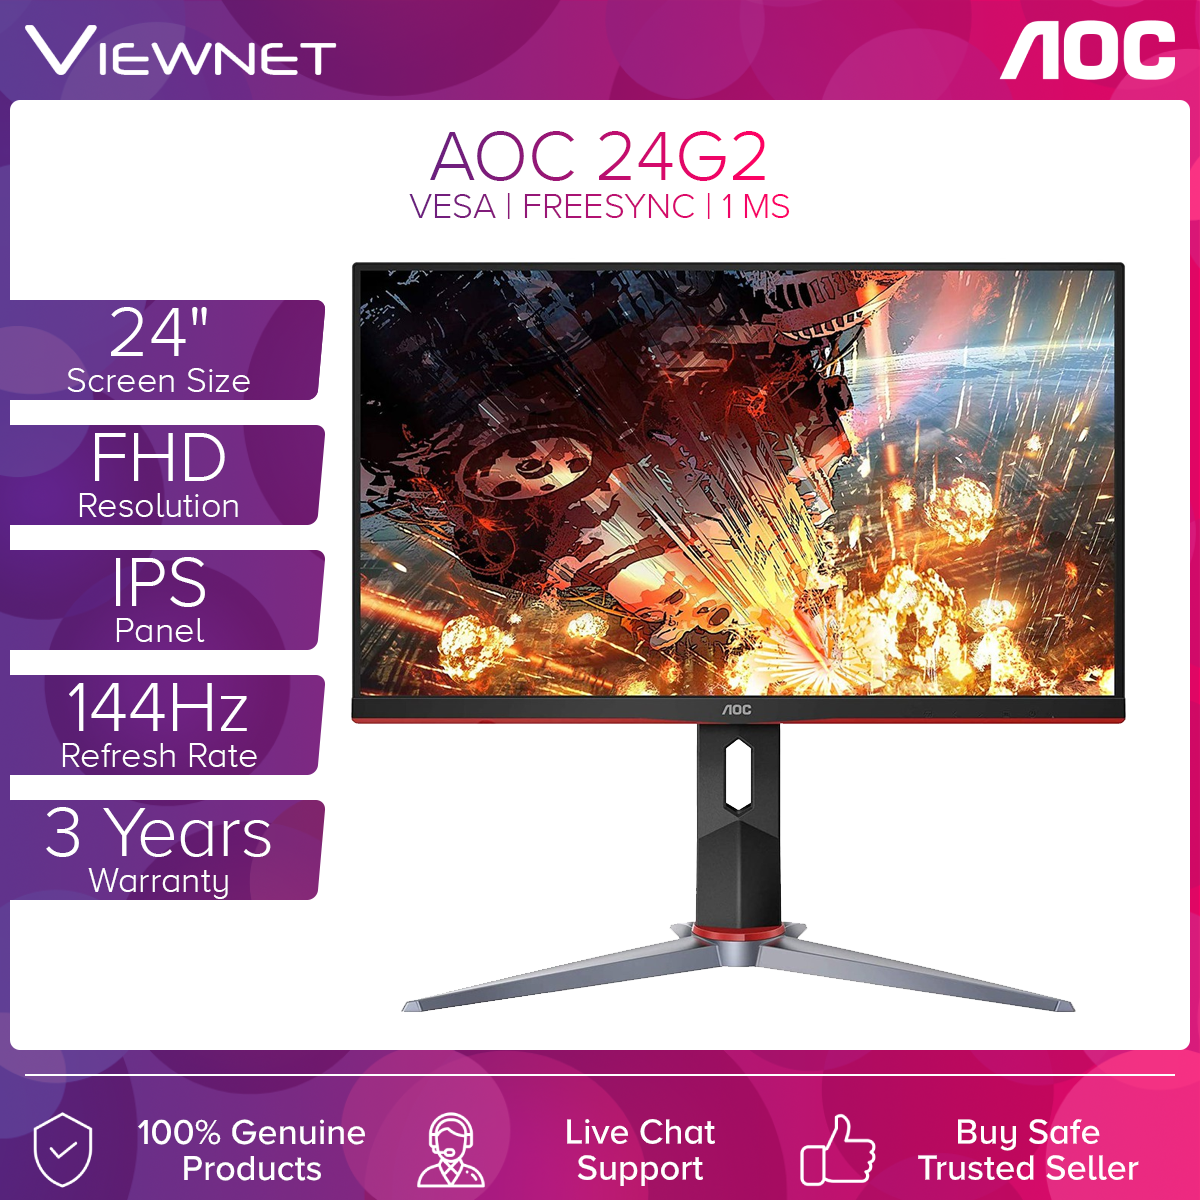 AOC 24G2 23.8 144HZ 1MS FHD ADAPTIVESYNC GAMING MONITOR